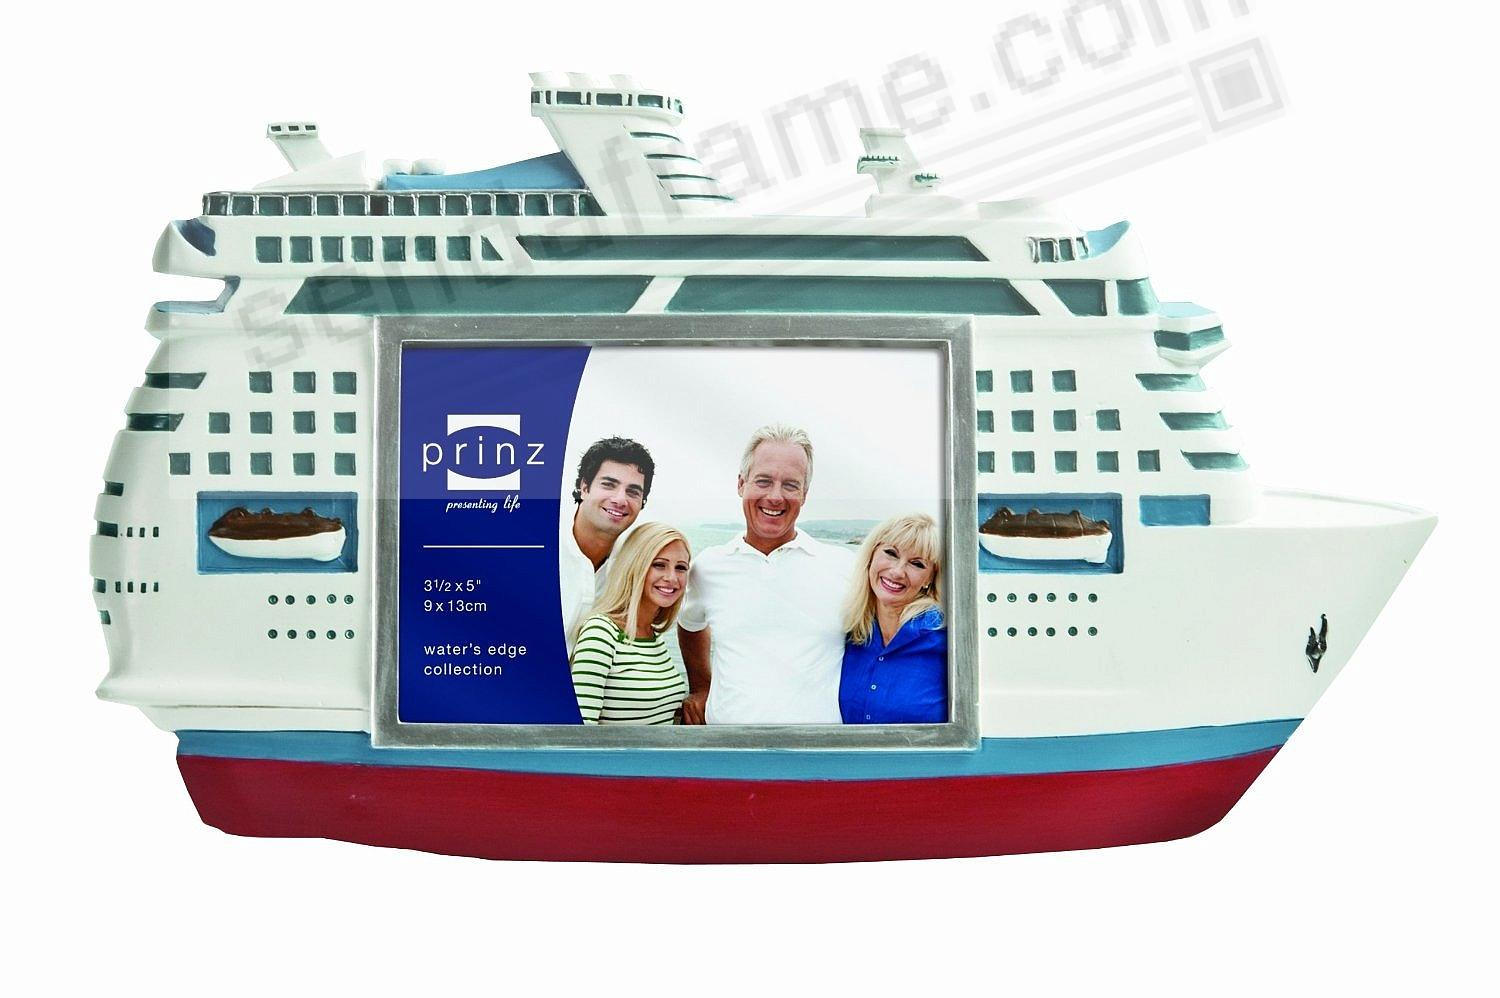 Adorable cruise ship memory photo frame by prinz picture frames adorable cruise ship memory photo frame by prinz picture frames photo albums personalized and engraved digital photo gifts sendaframe jeuxipadfo Image collections